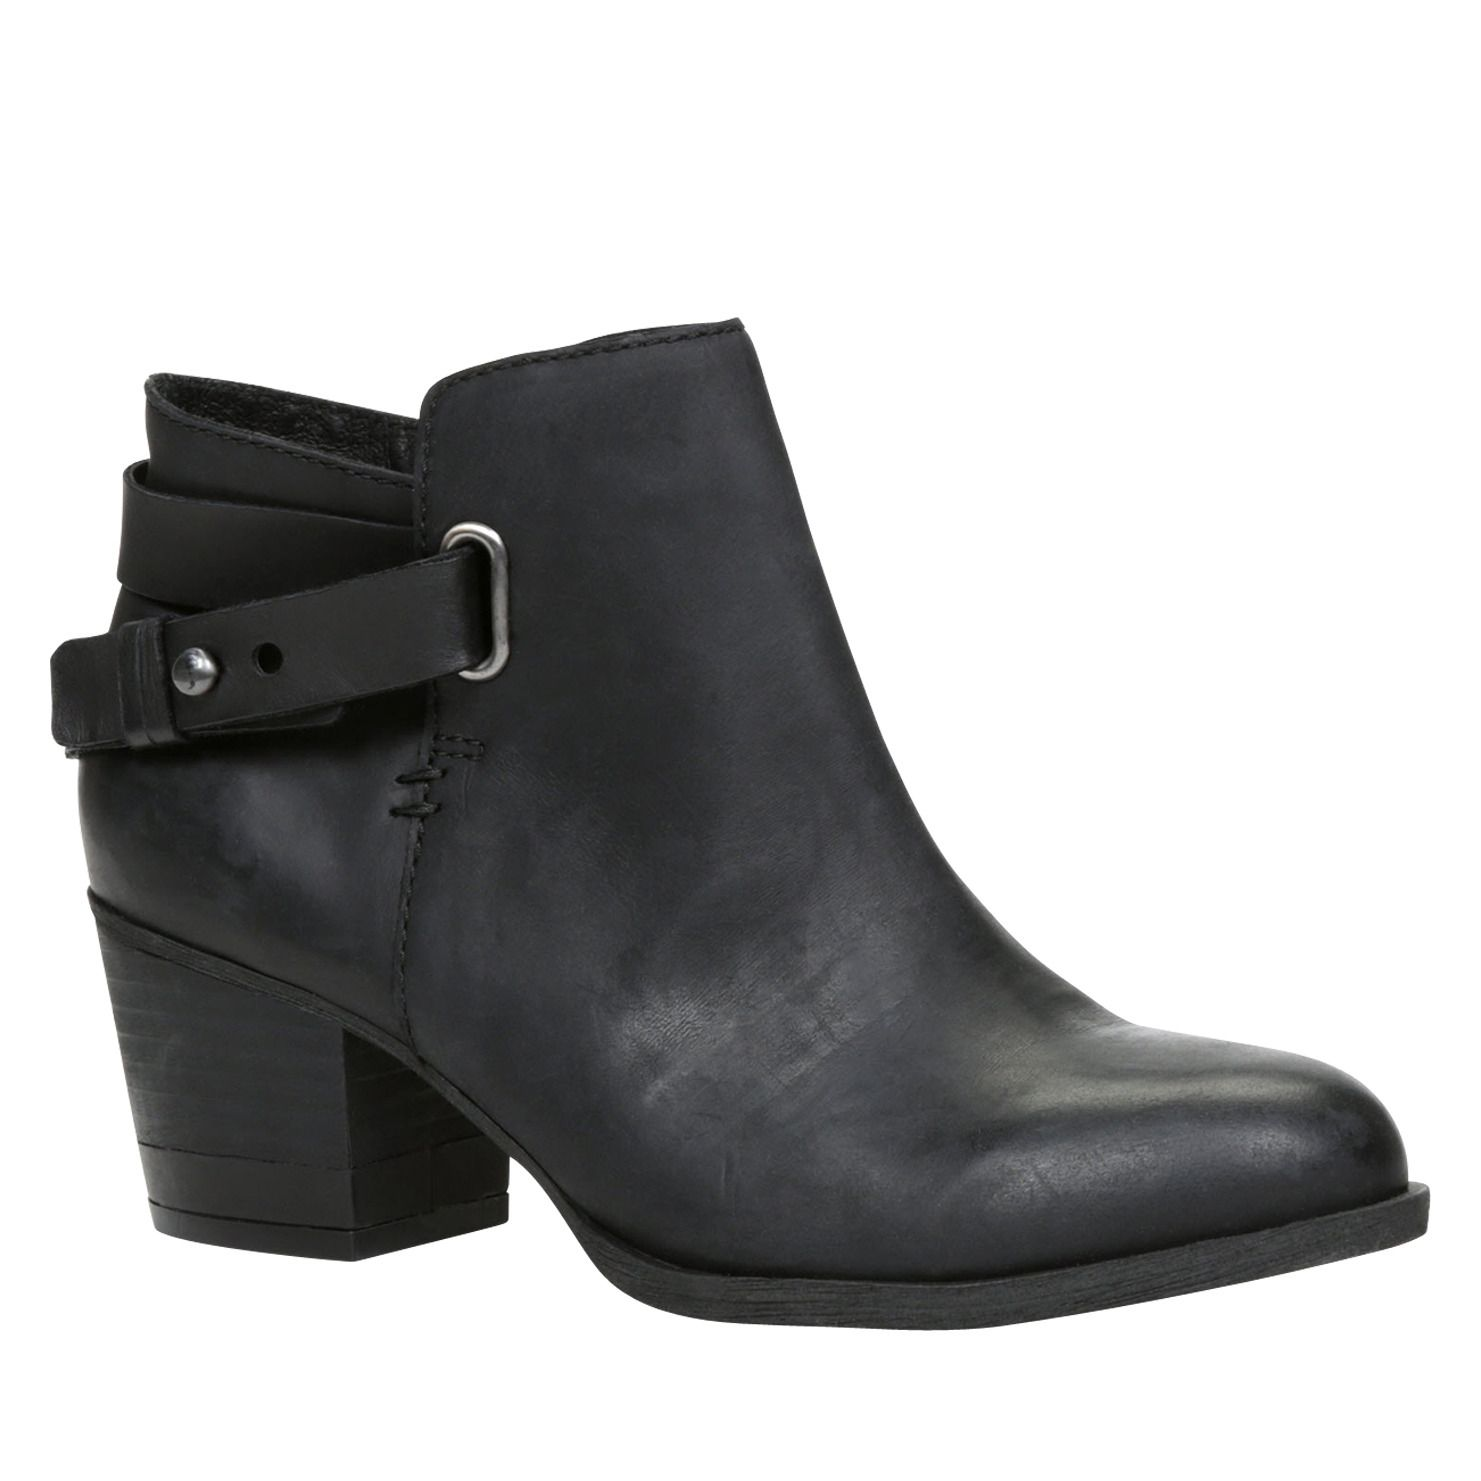 ALLIE - women's ankle boots boots for sale at ALDO Shoes. | black ...